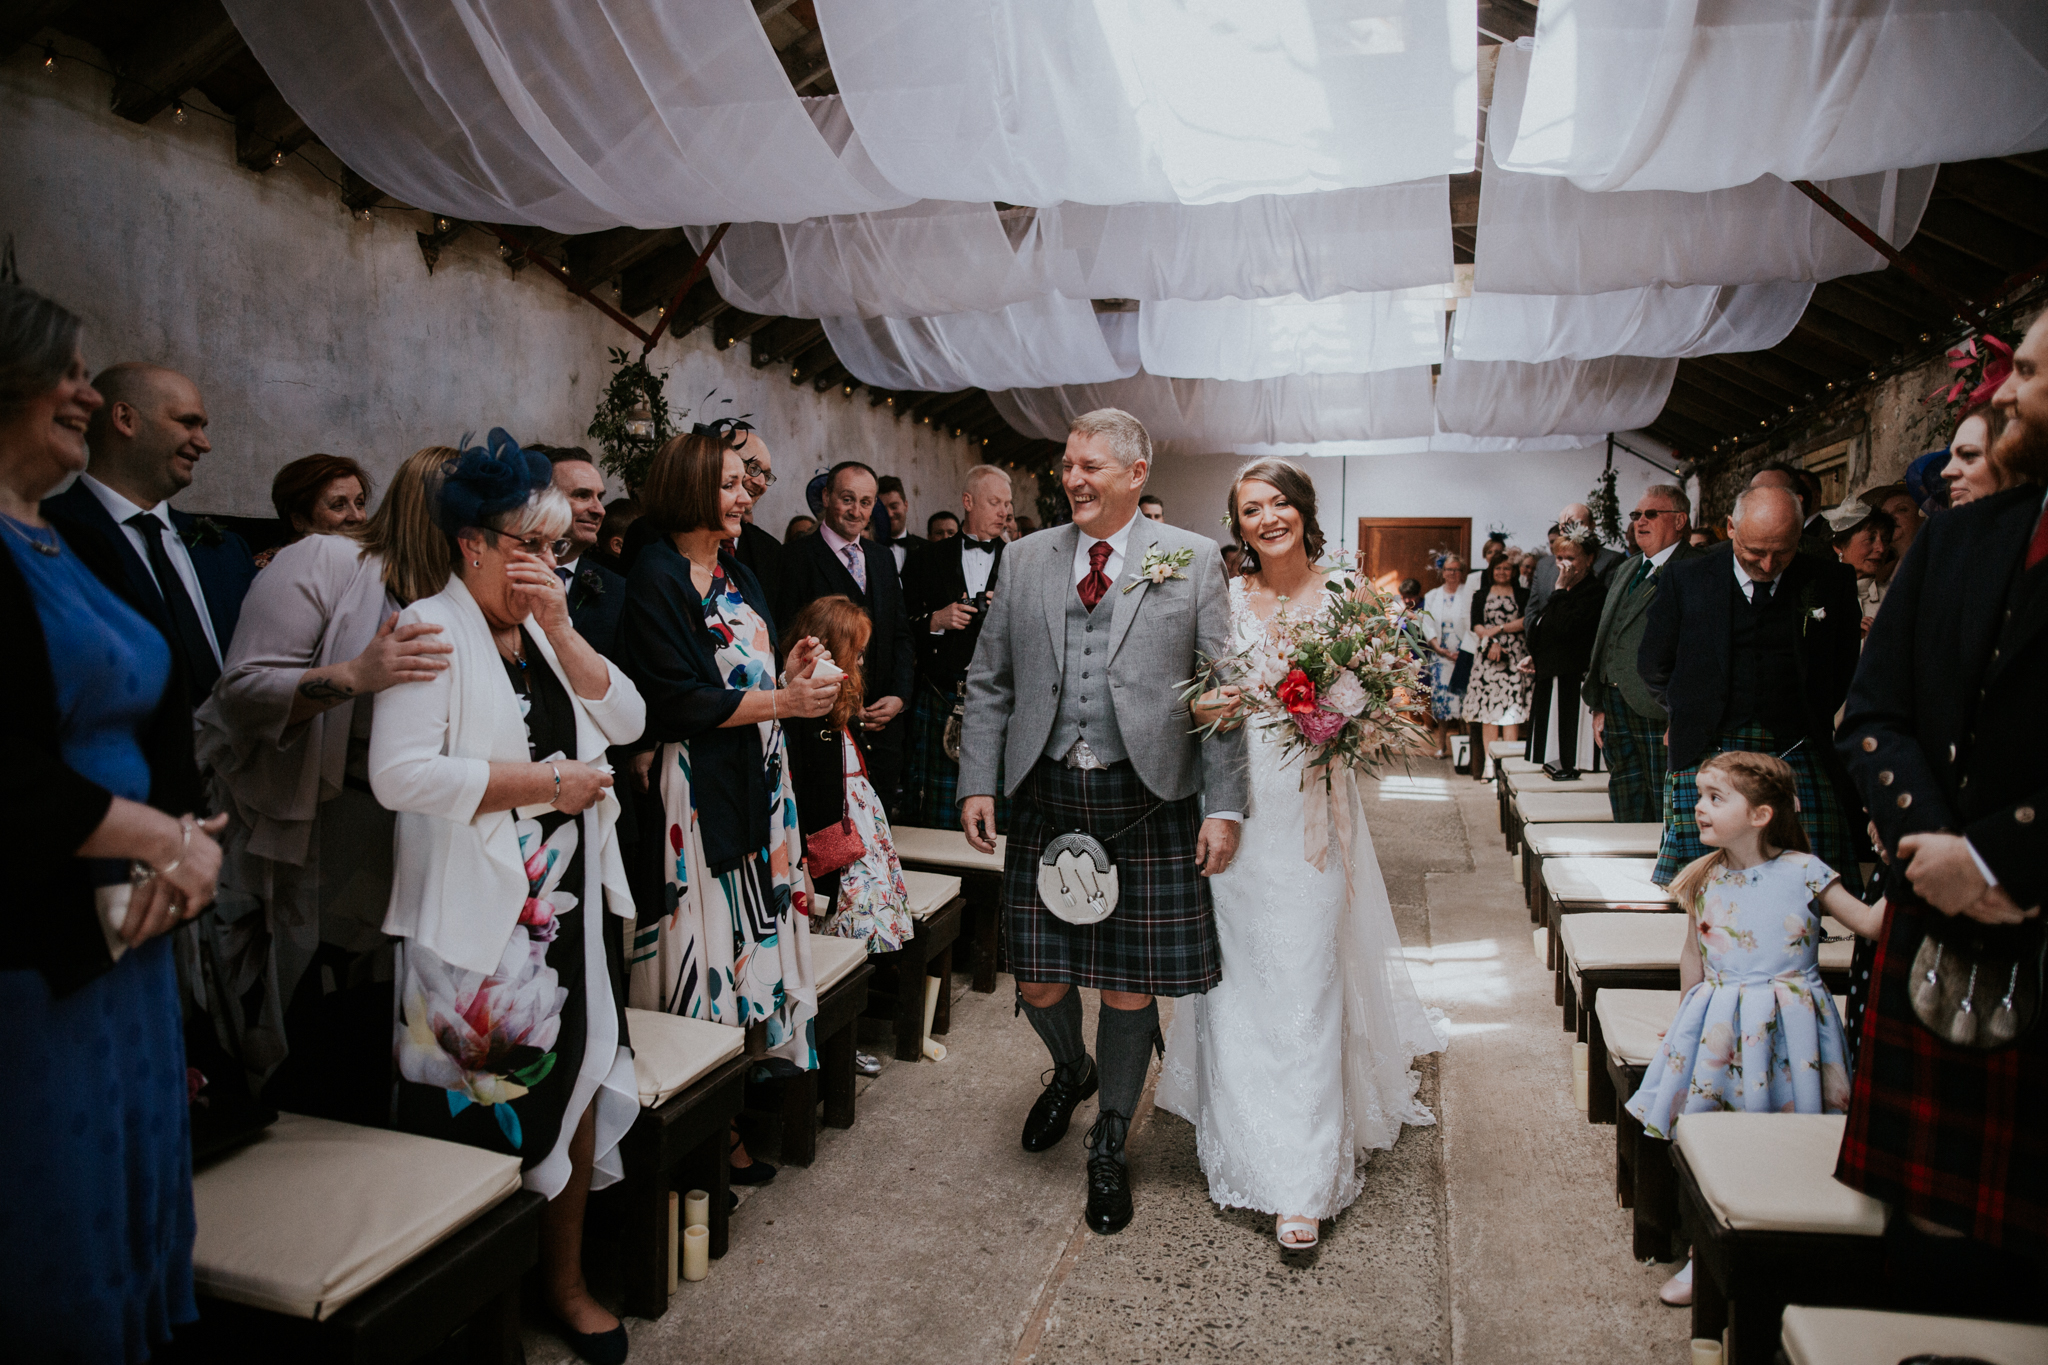 The bride is walking together with her father into the ceremony room at the Harelaw farm